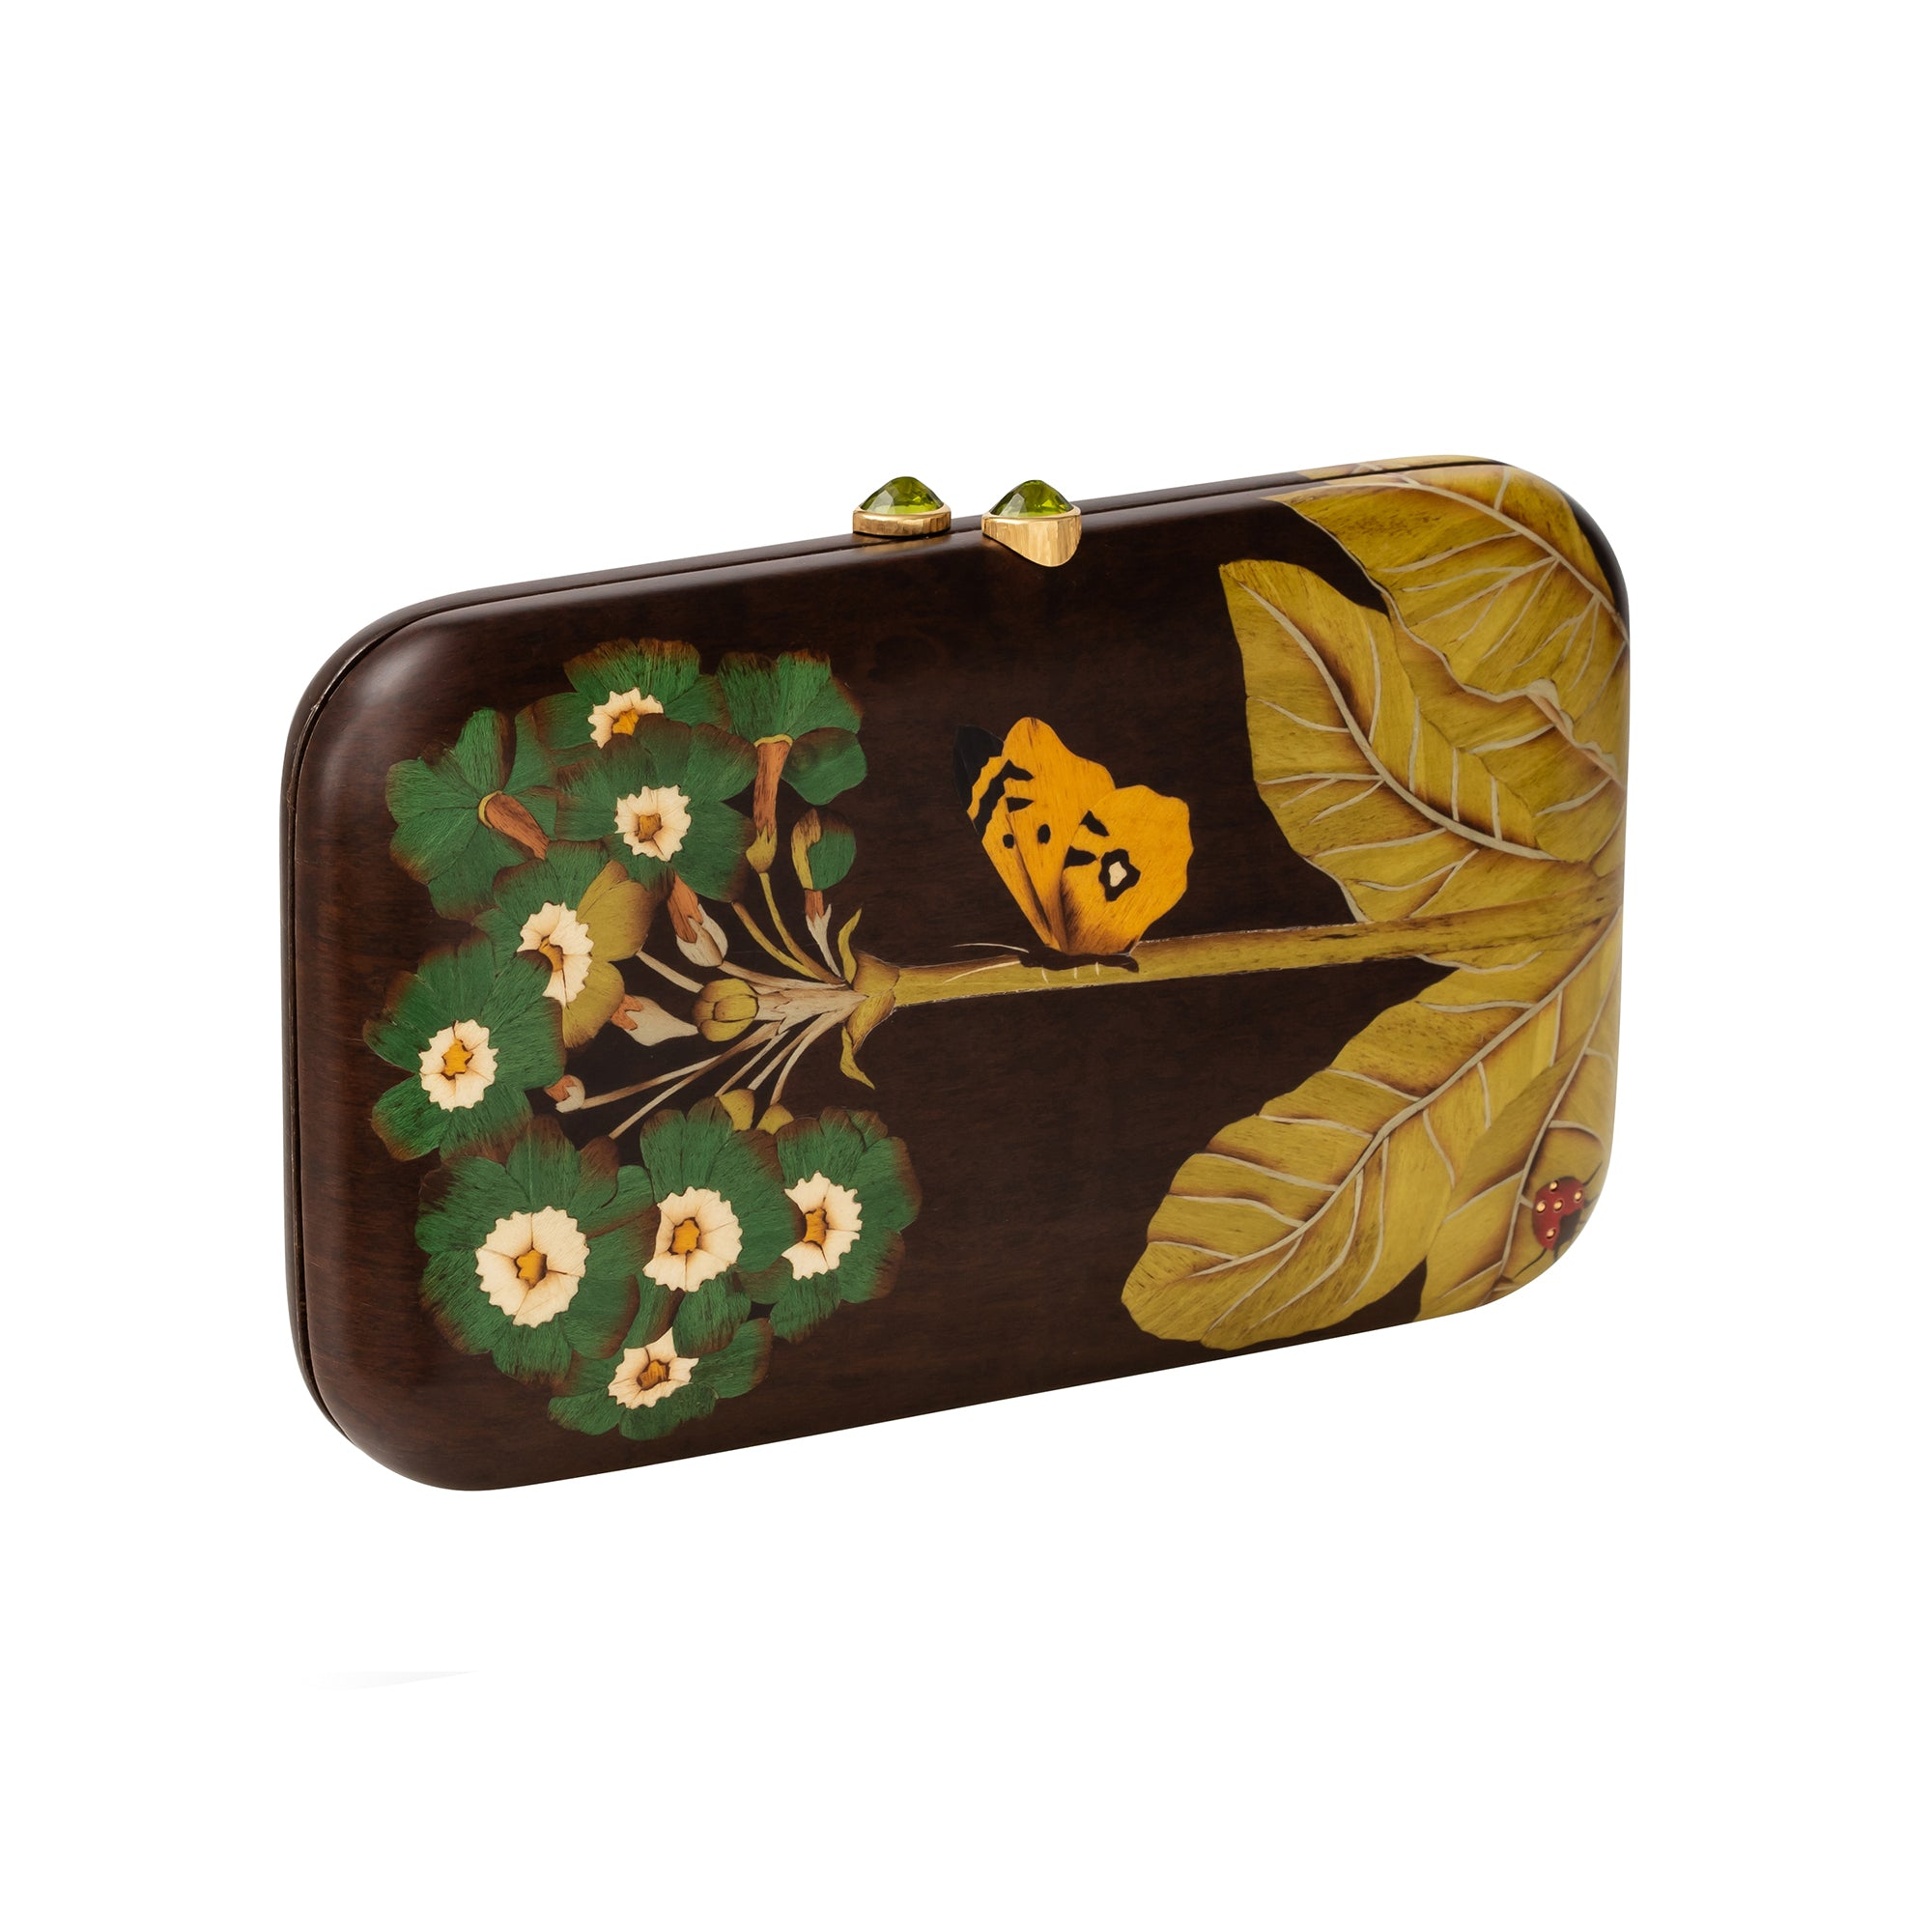 Marquetry Butterfly & Ladybug Clutch - Silvia Furmanovich - Accessories | Broken English Jewelry